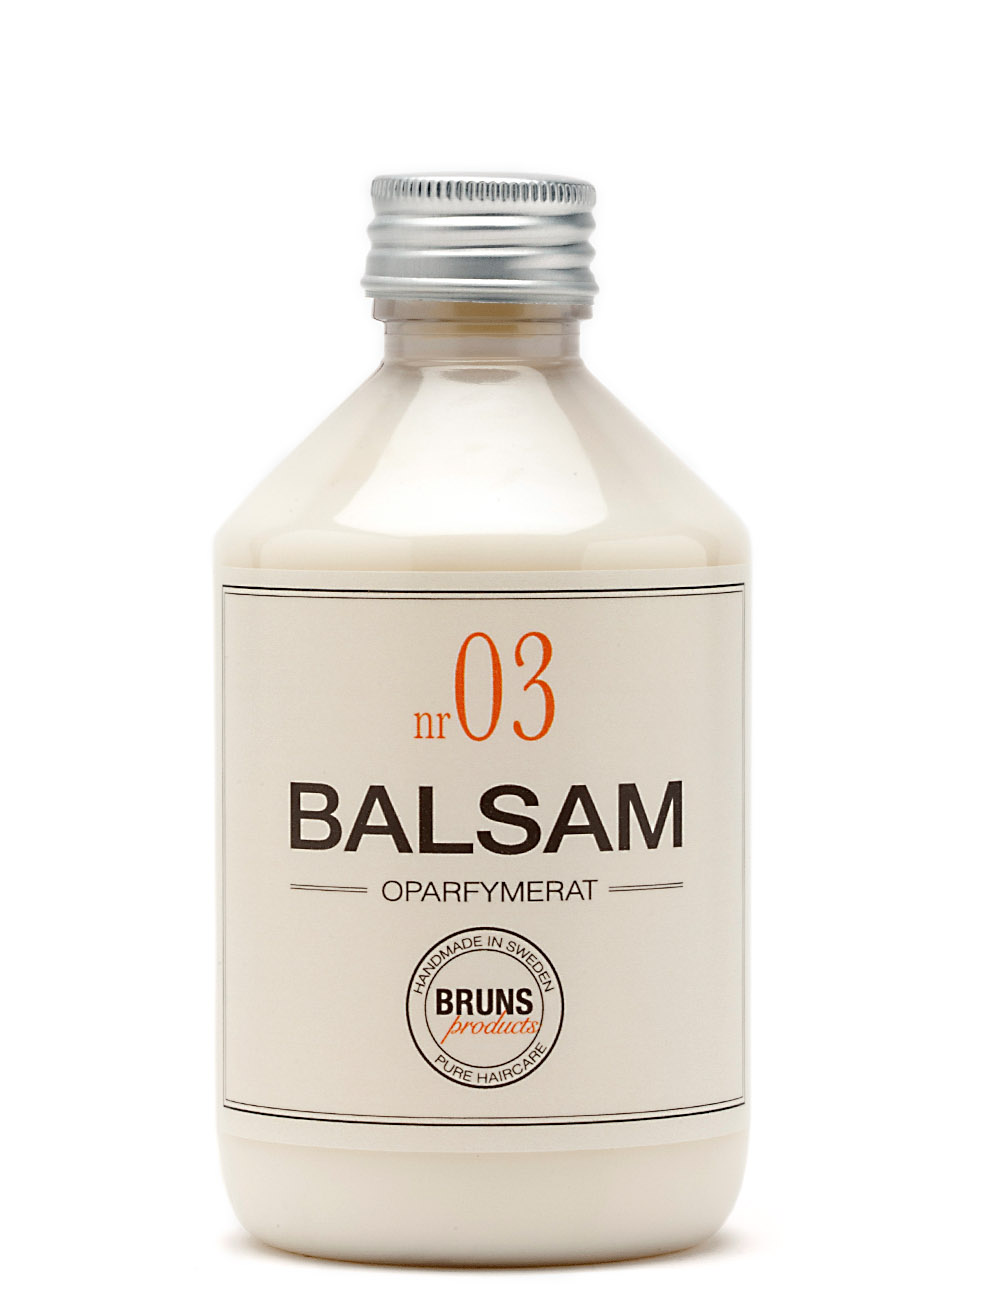 BRUNS Products Nr03 Unscented Balsam Hajusteeton Hoitoaine 1000 ml